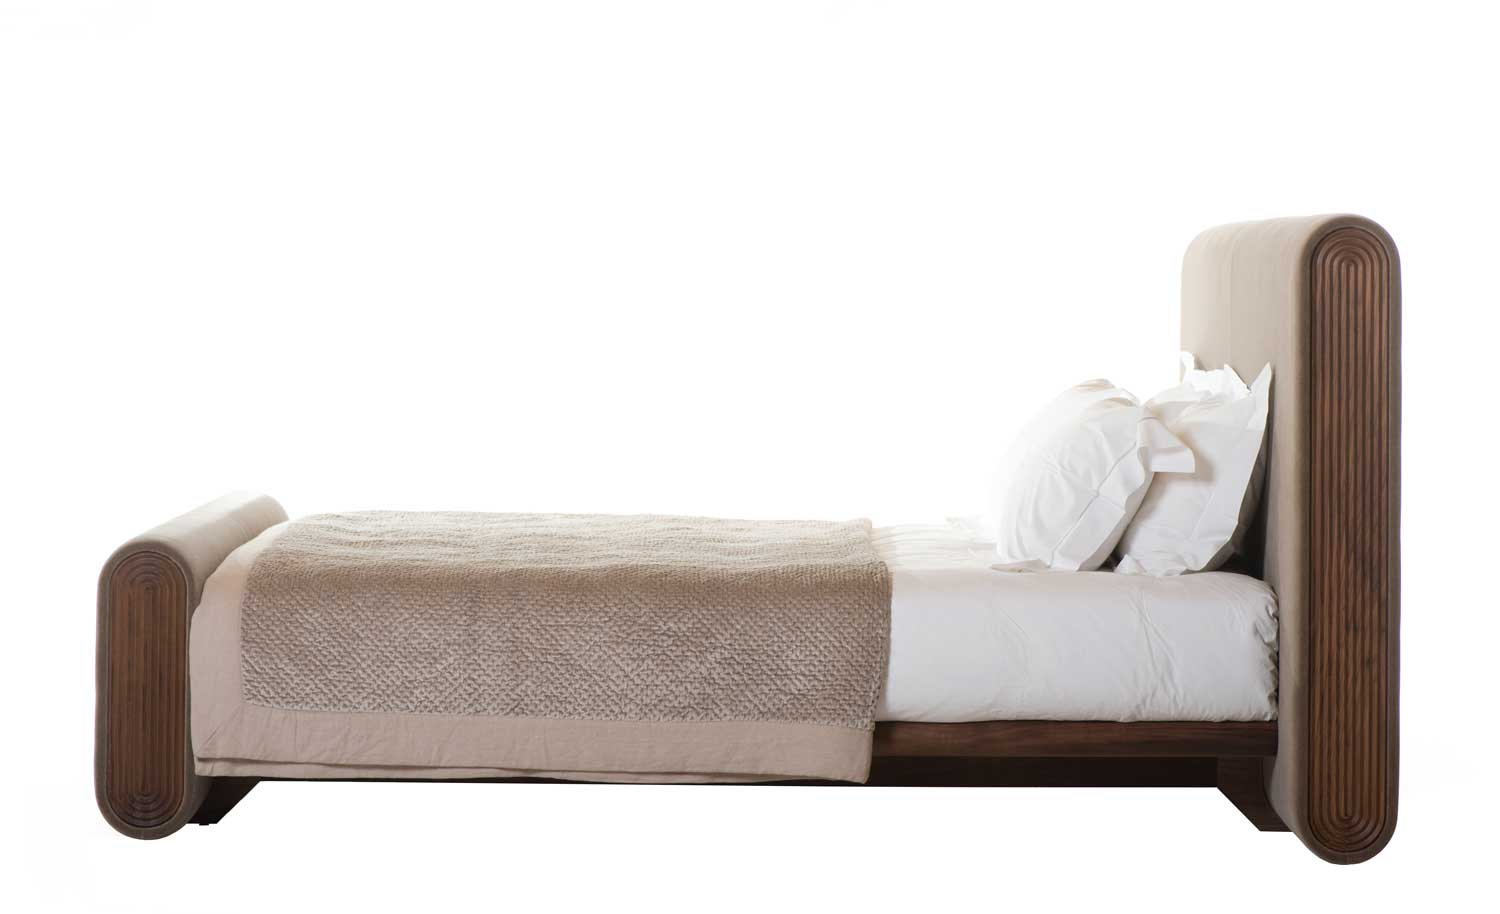 Union Bed by Autoban at Maison & Objet 2015 | Yellowtrace